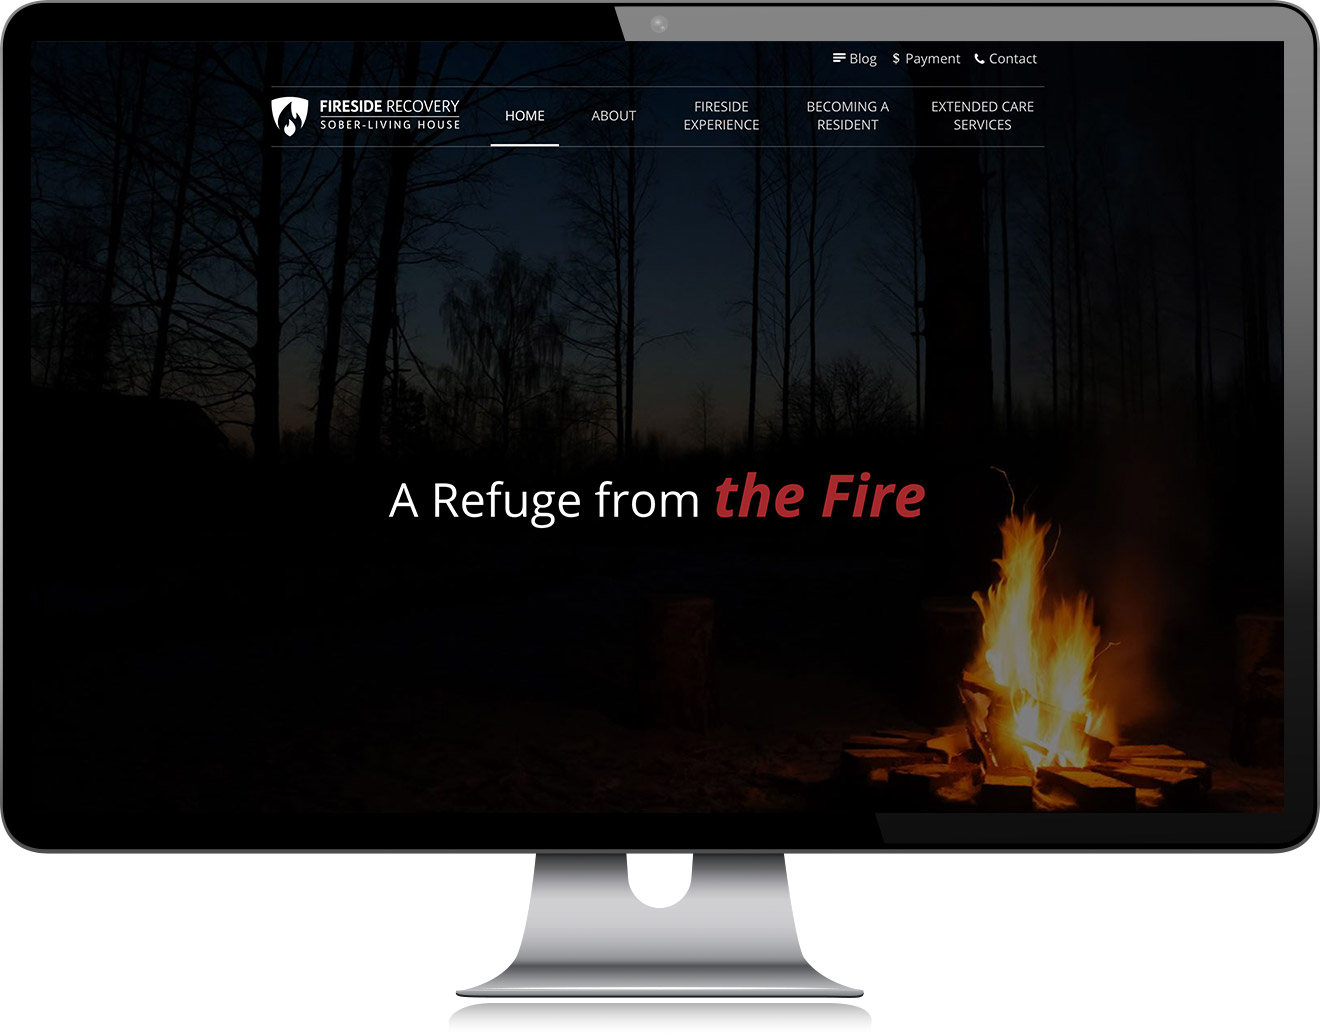 Fireside Recovery Homepage Design